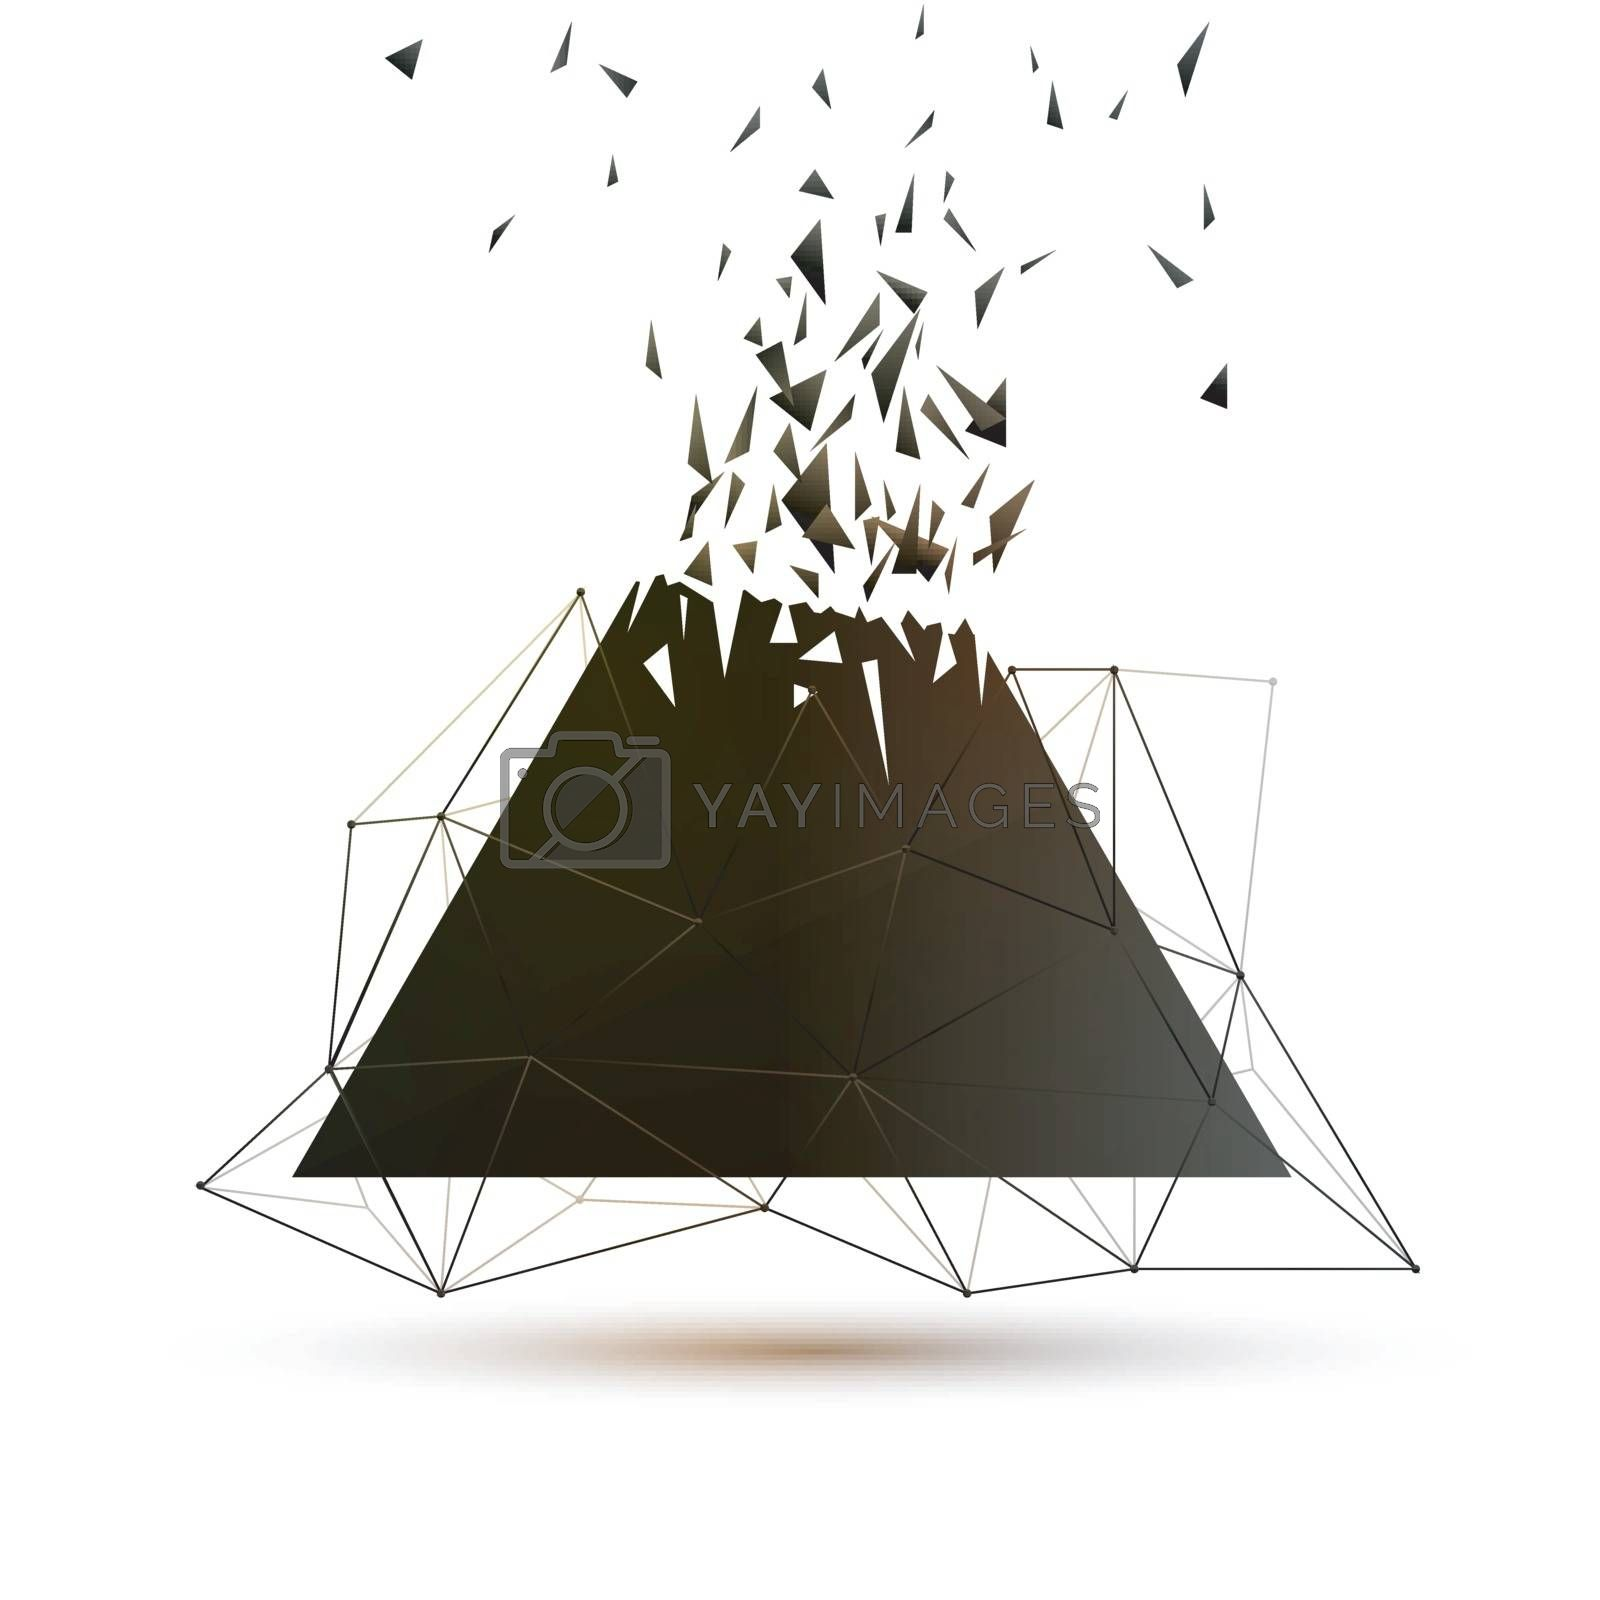 Modern abstract geometric background with triangles explosion effect.